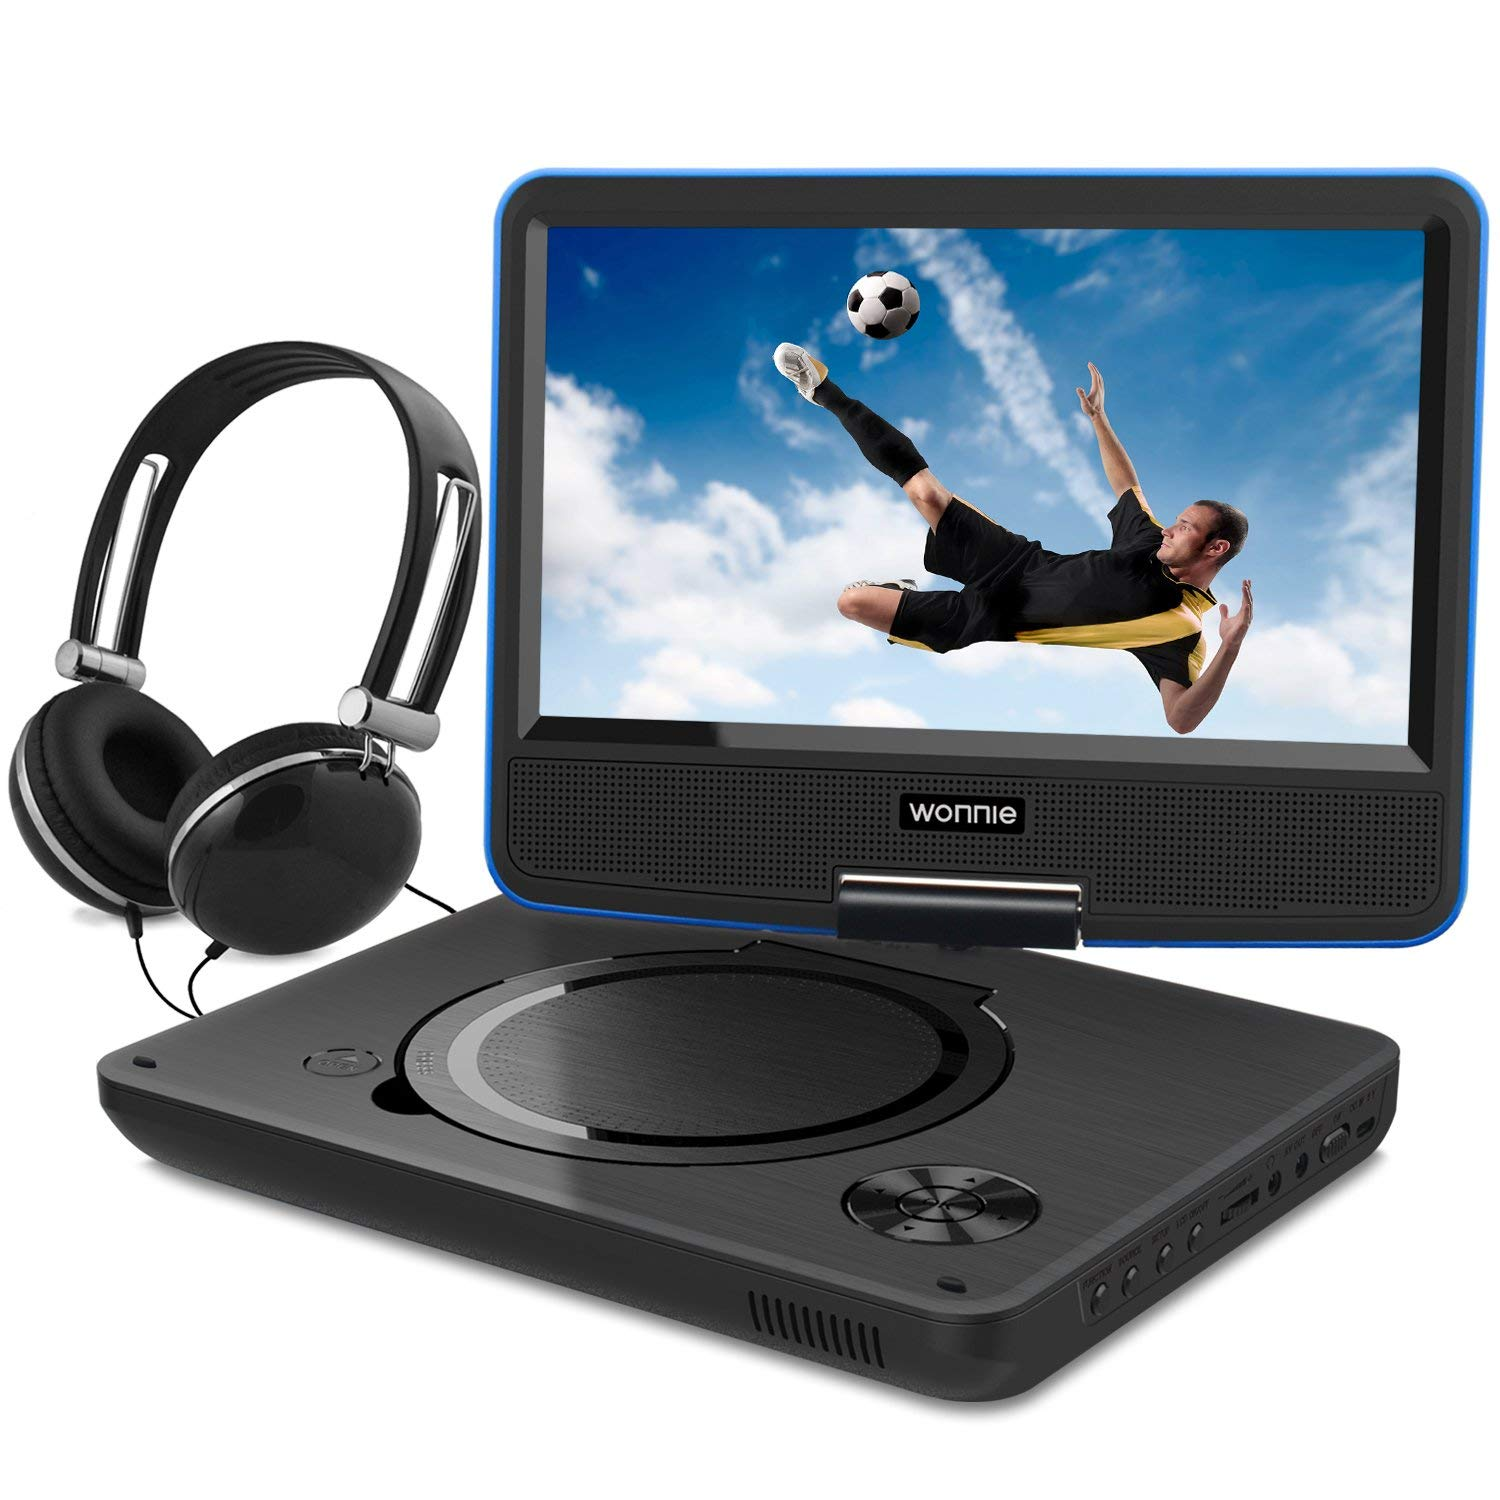 The 10 Best Portable DVD Players to Buy 2019 - Auto Quarterly